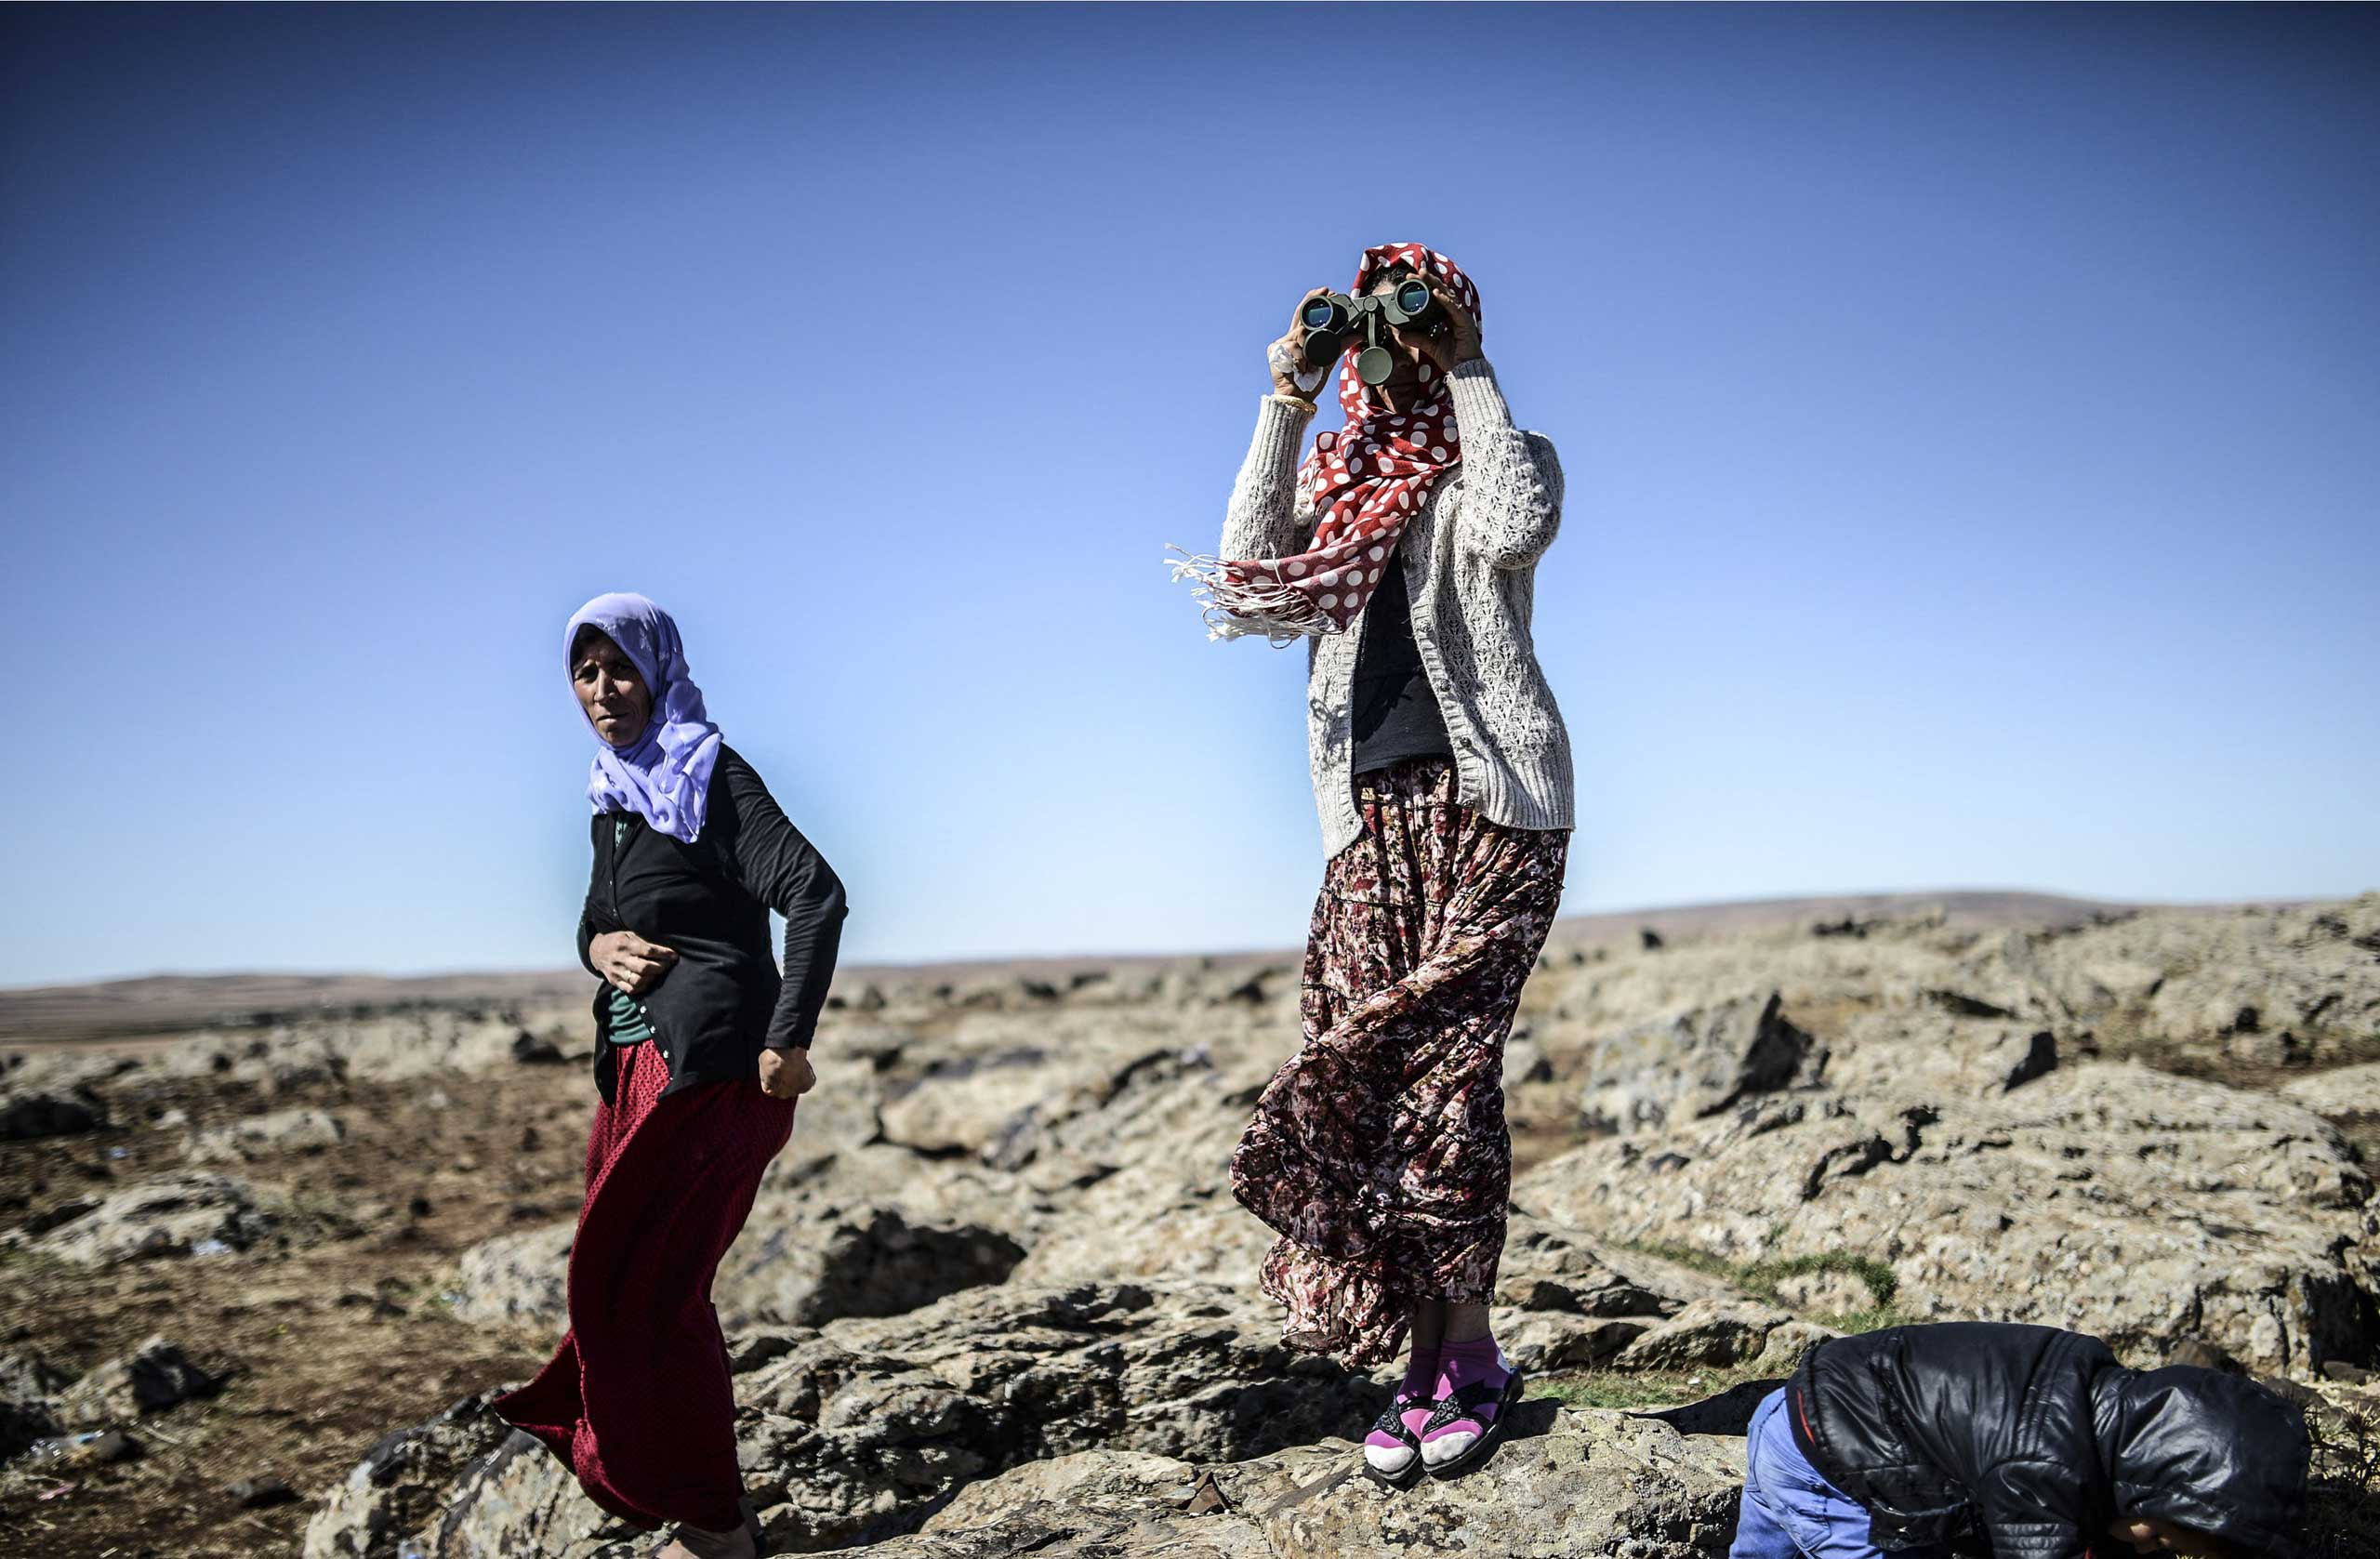 Members of the Syrian Kurdish Altay family try to spot their relative, Zamani Suruc, who is fighting Islamic State (IS) jihadists in the Syrian border town of Kobani on Oct. 20, 2014.